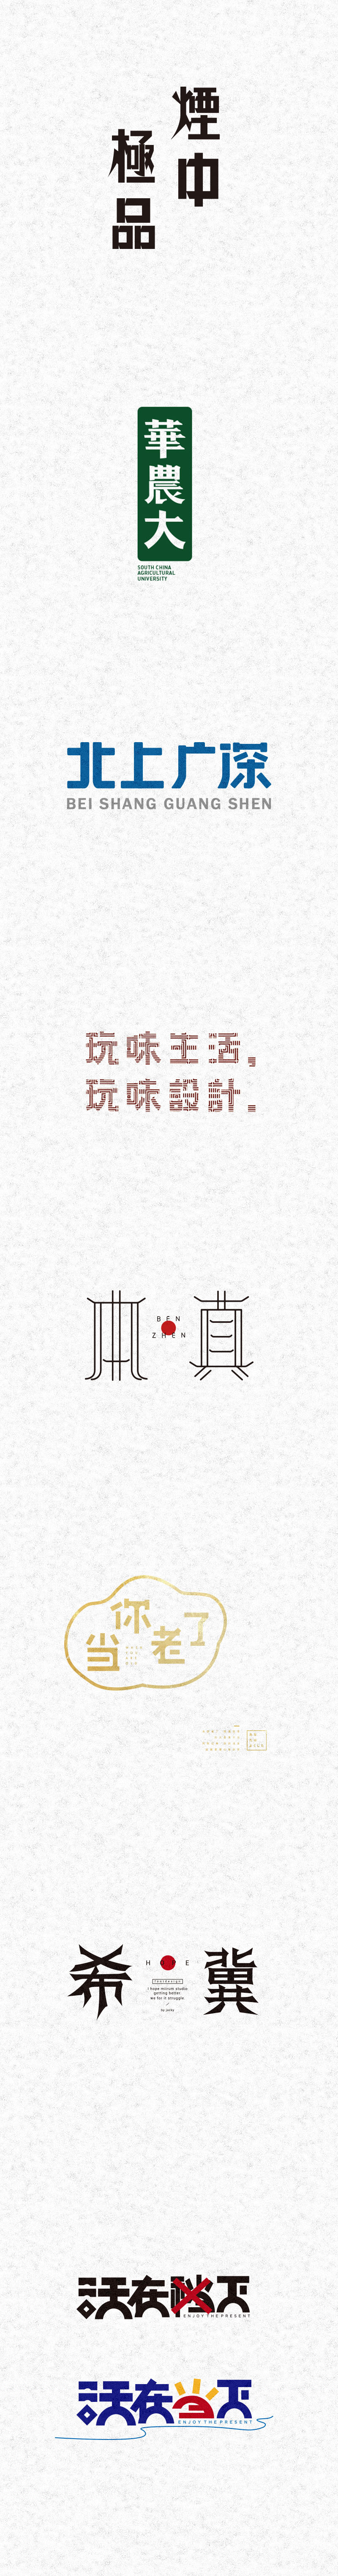 chinesefontdesign.com 2016 11 06 16 45 33 Has a unique creative Chinese font logo design